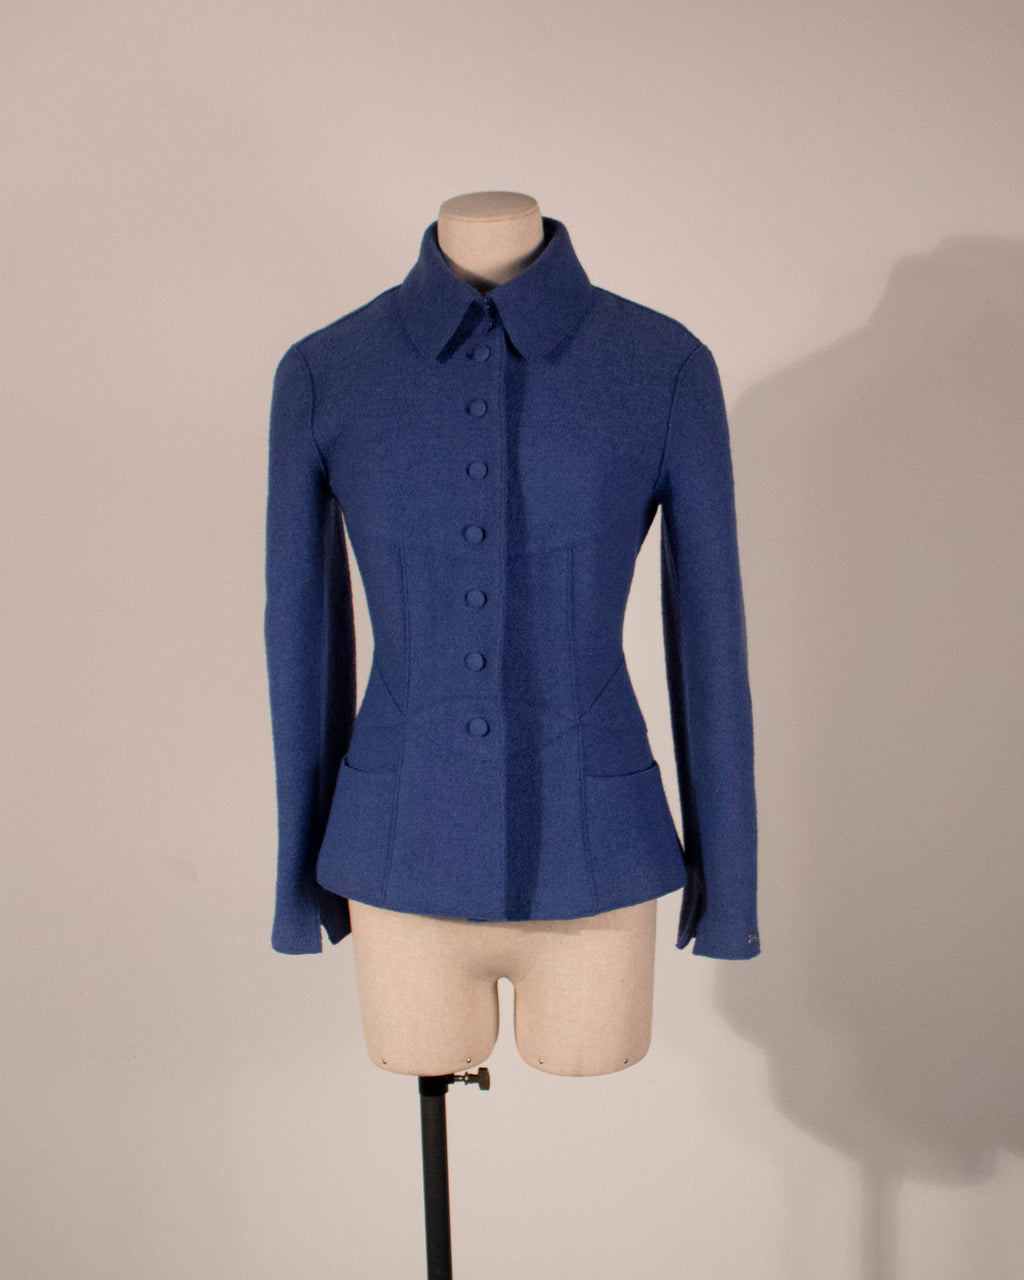 Chanel cornflower blue boiled wool jacket